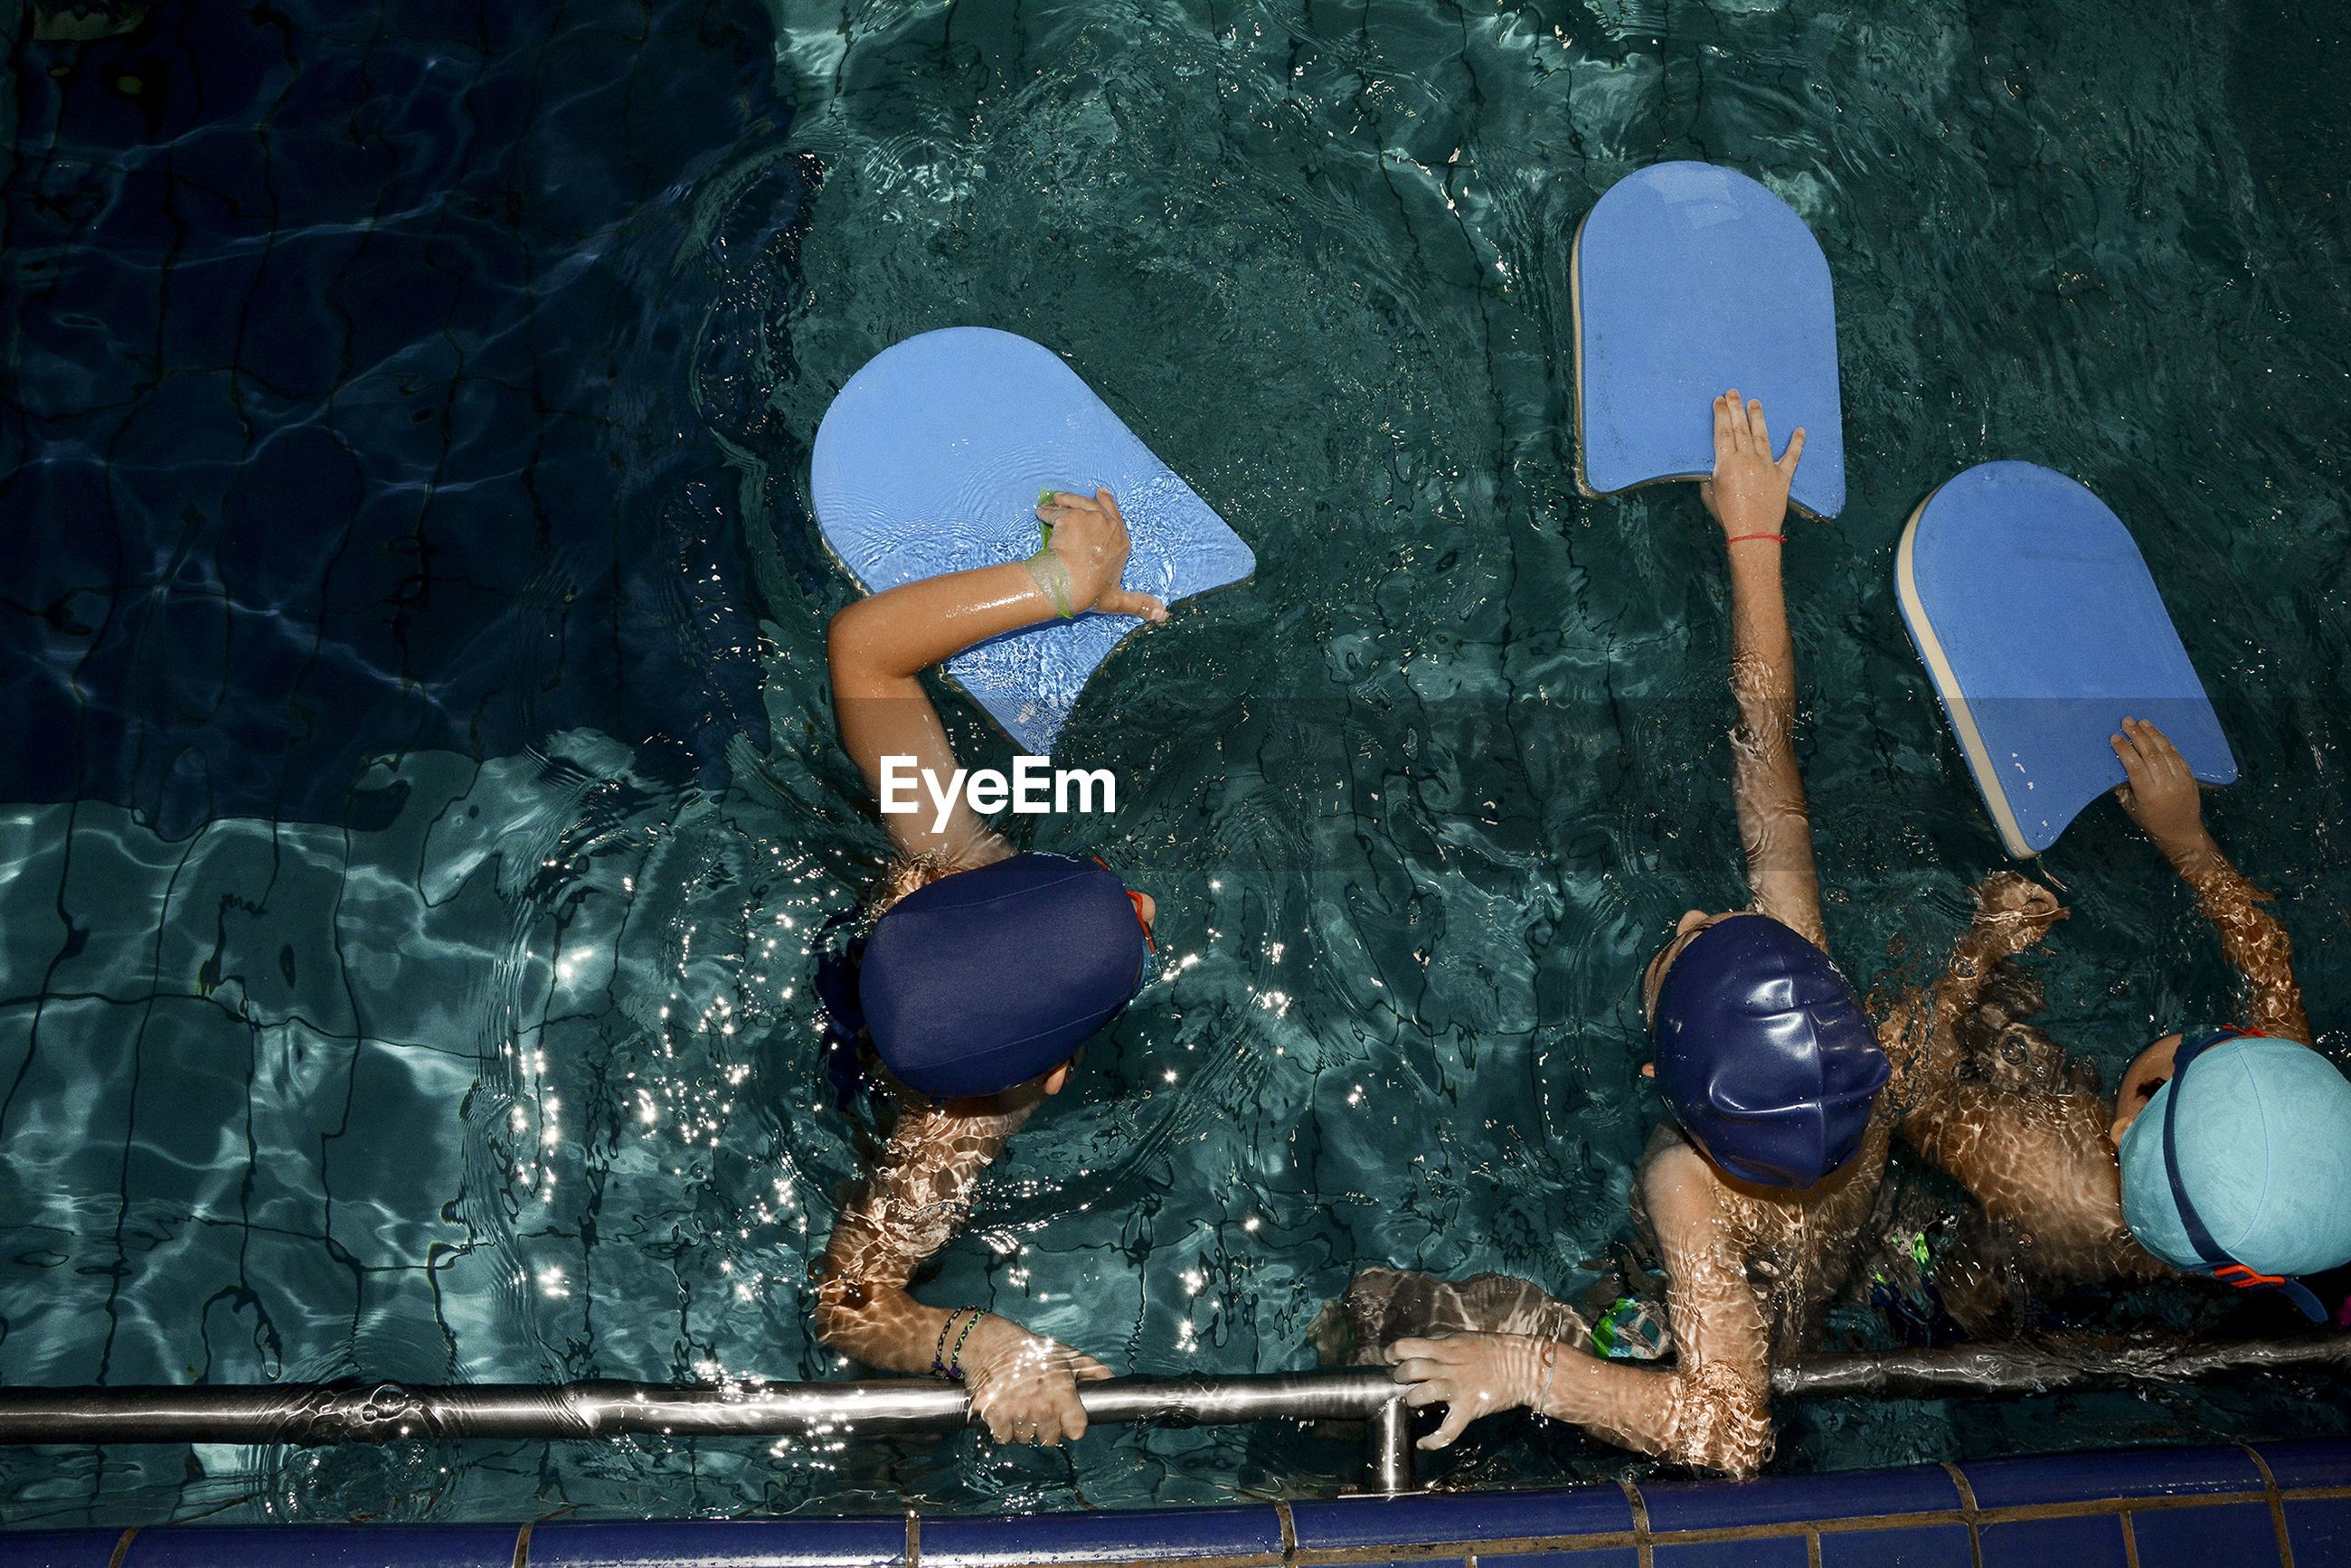 High angle view of children in swimming pool